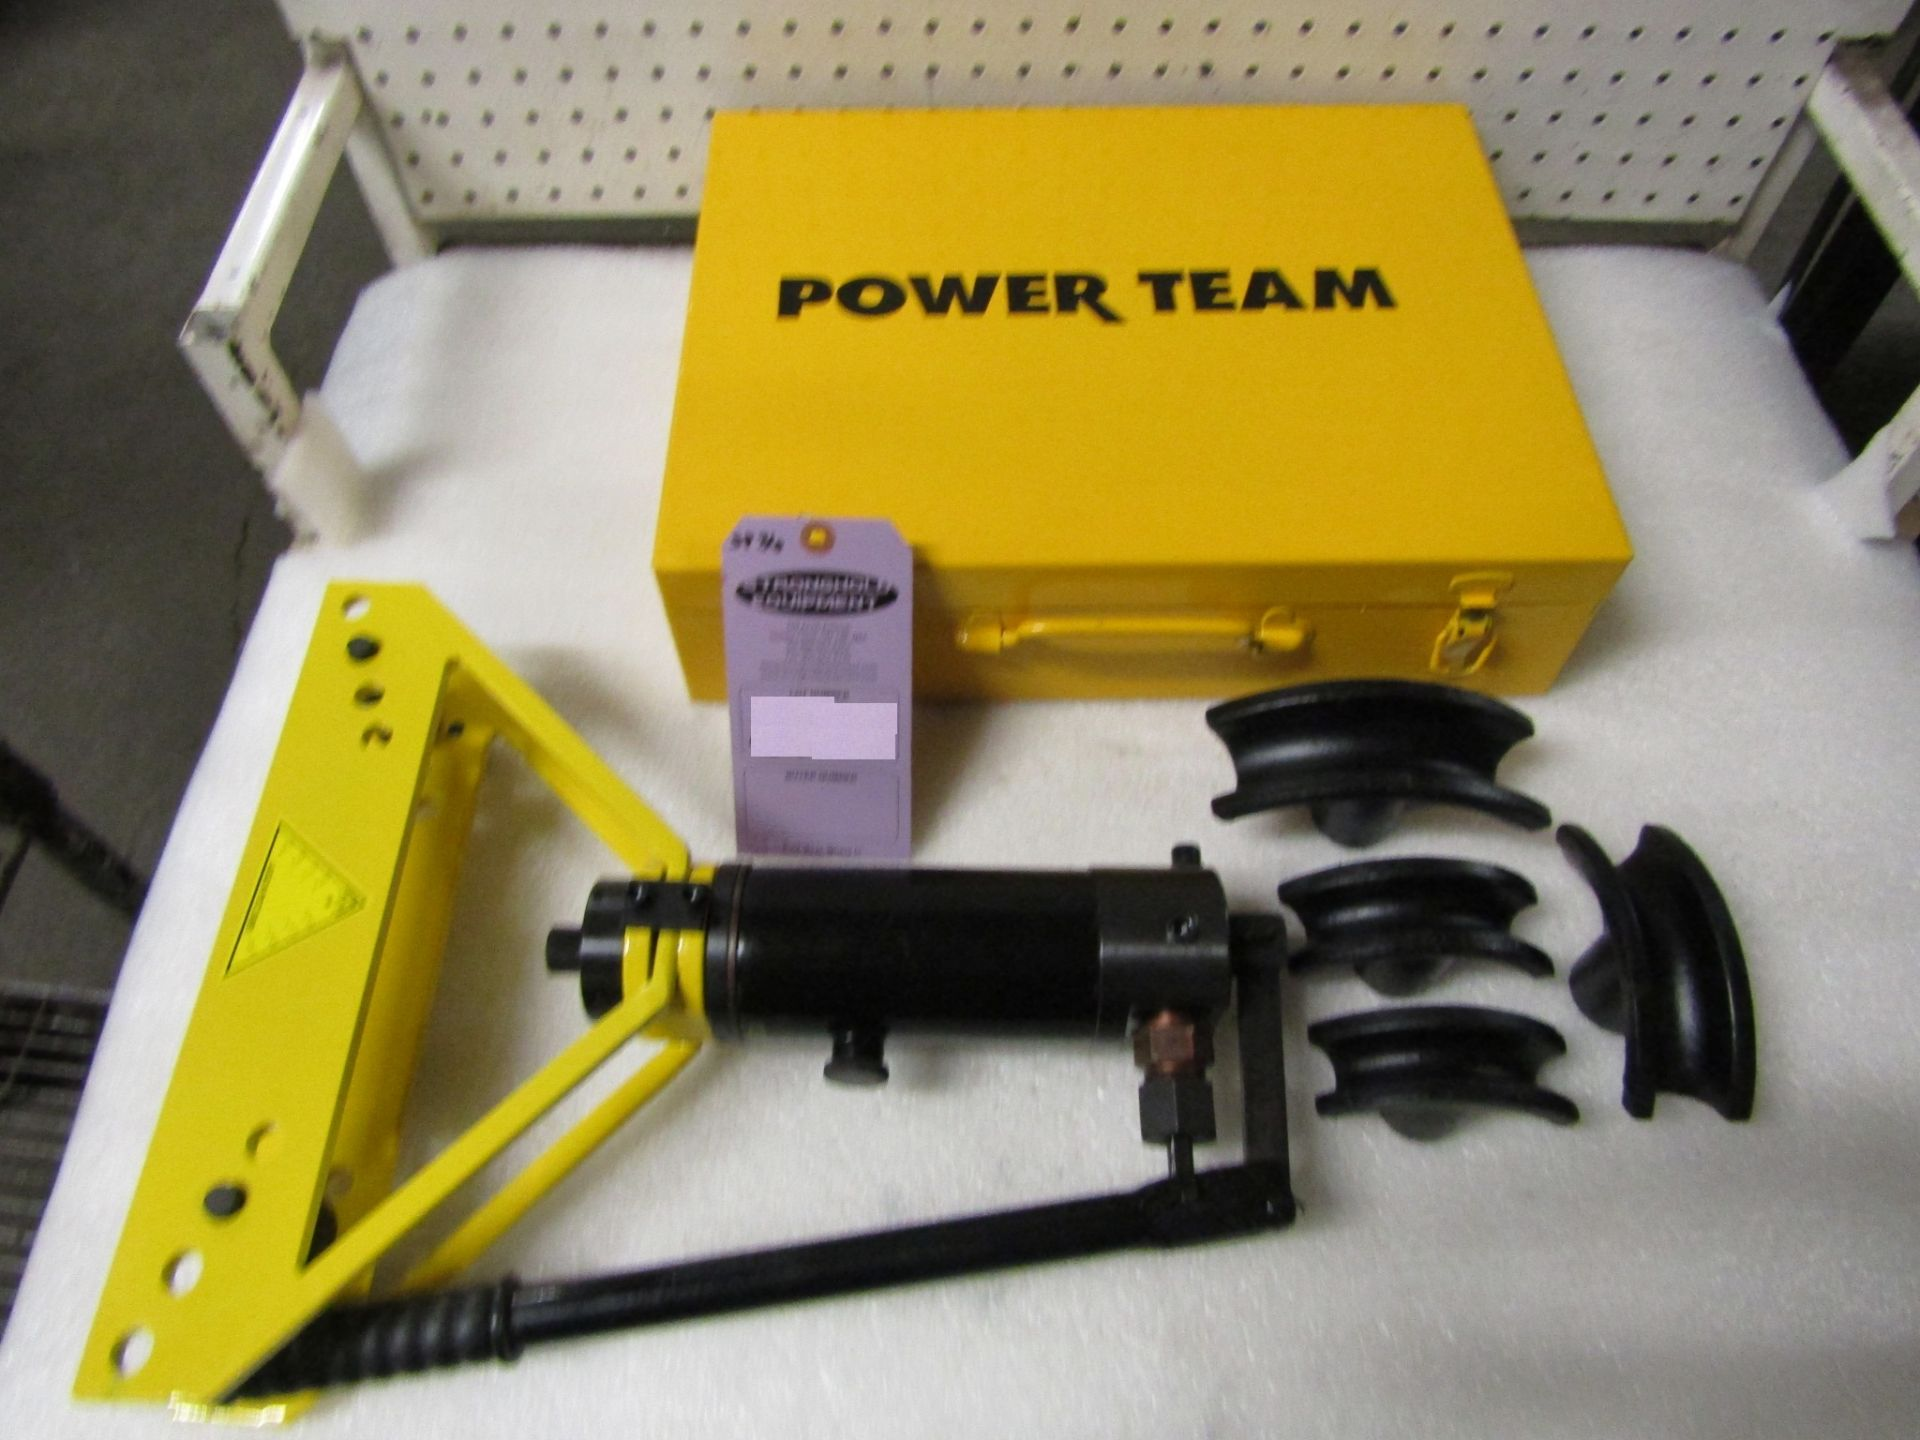 """Power Team Hydraulics style tube Bender unit up to 1"""" capacity including dies in case - MINT, UNUSED - Image 2 of 2"""